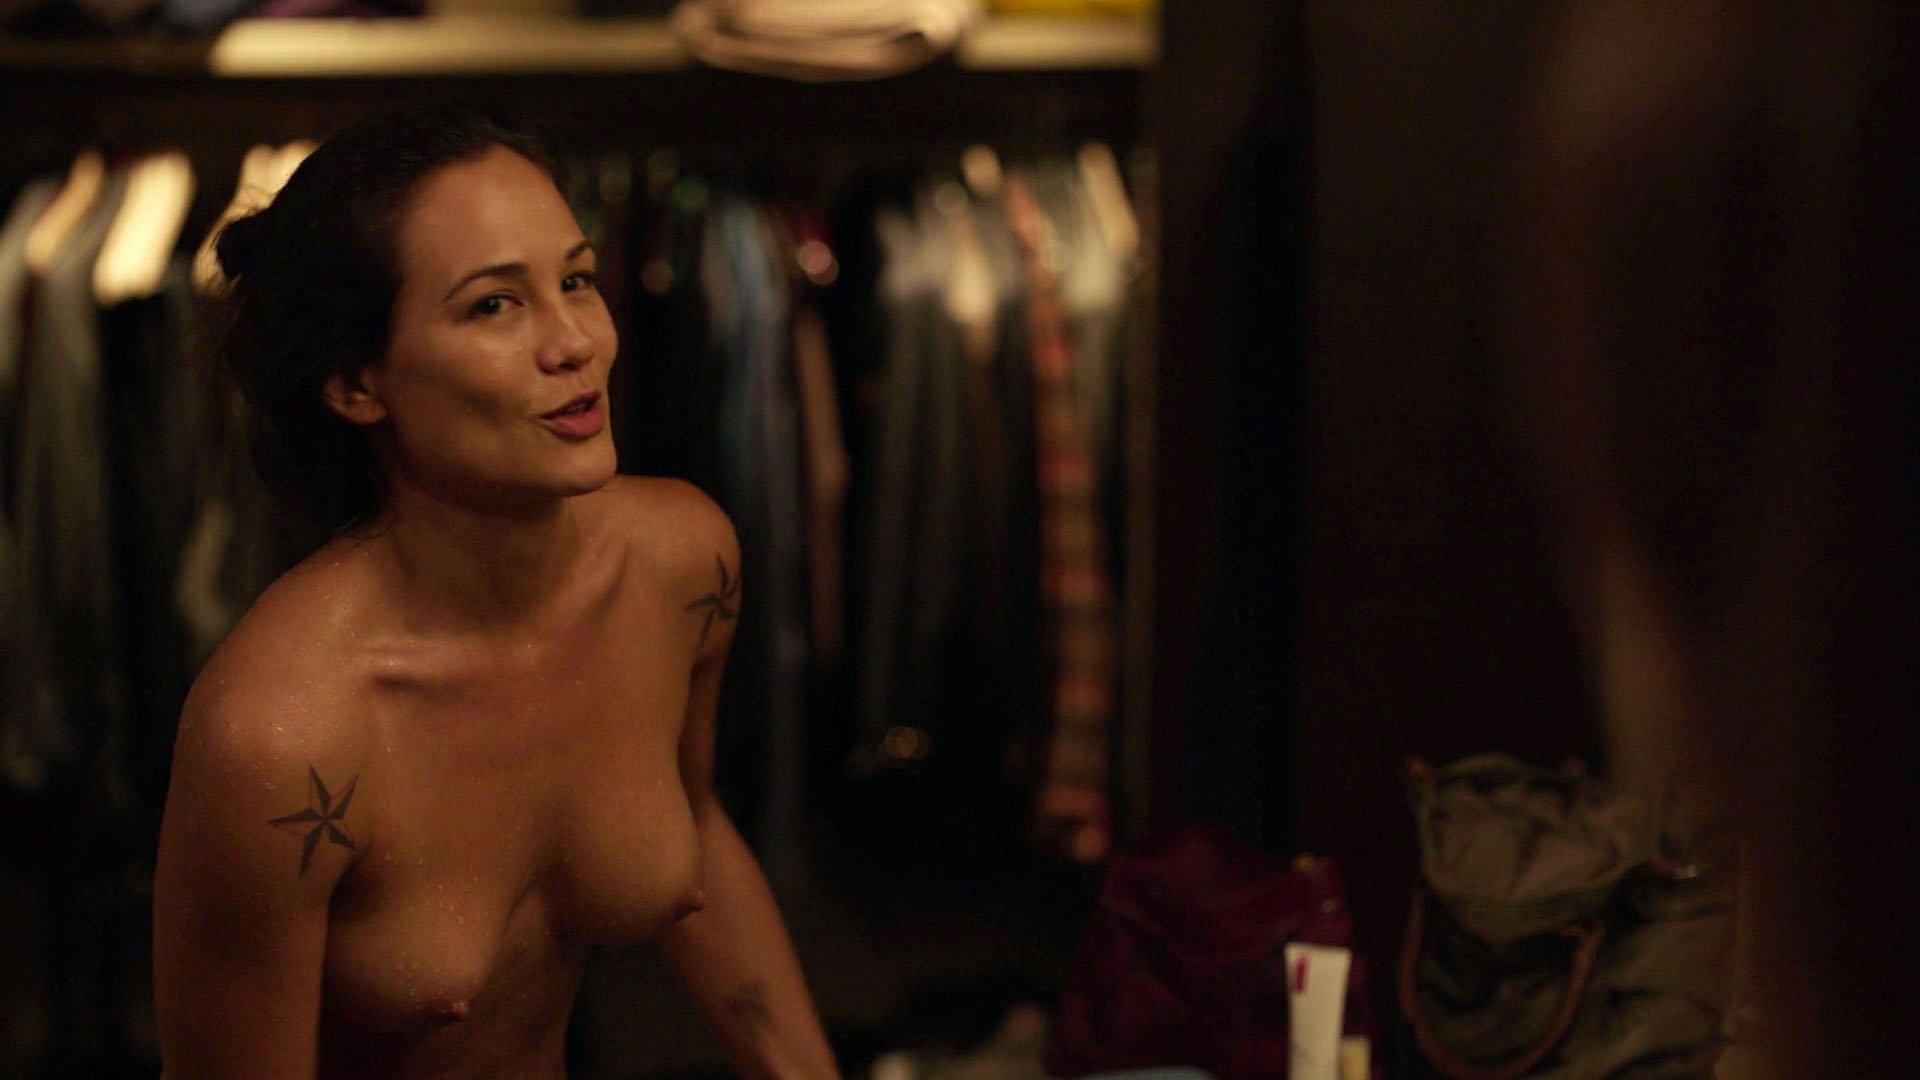 Nude of boardwalk empire season 1